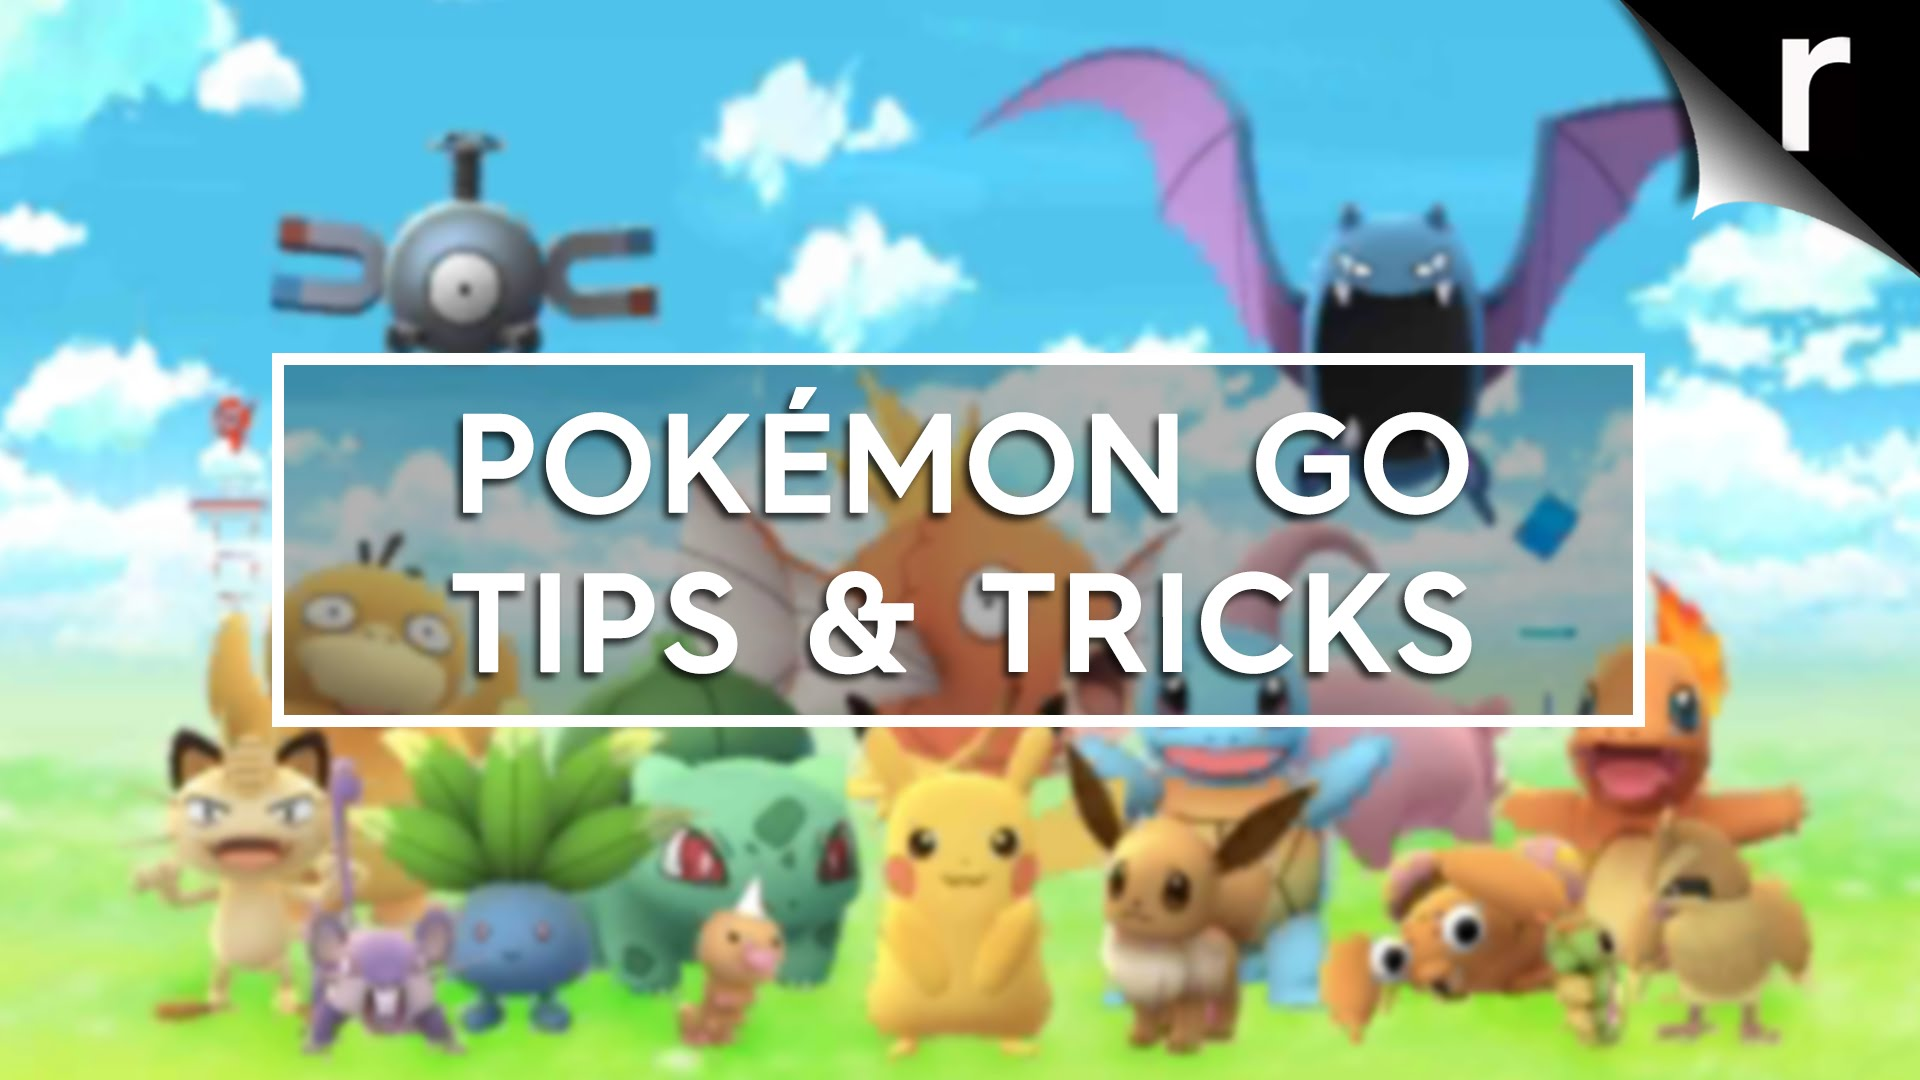 Pokémon GO Tips & Tricks